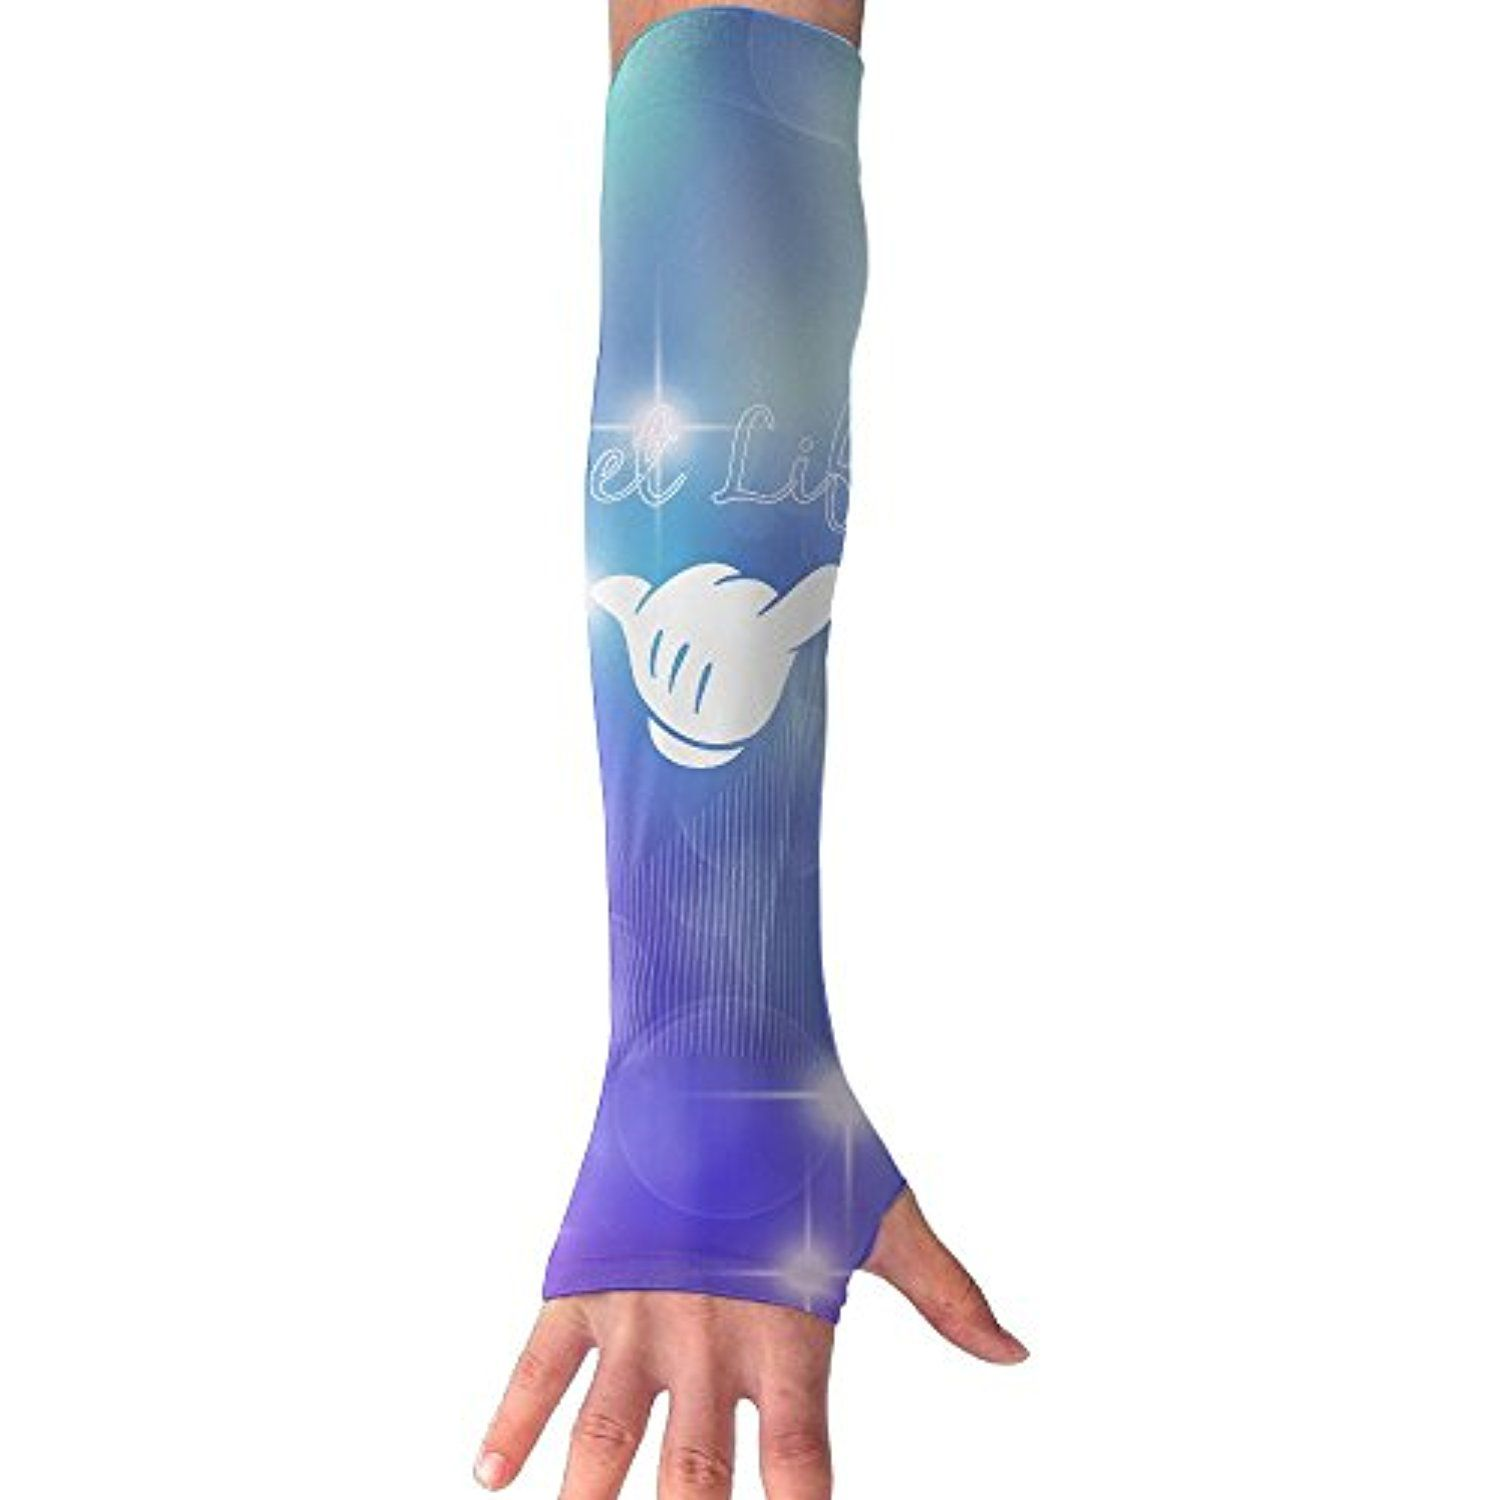 Lovely Jet Life 1 Pair Uv Sleeves Sun Sleeves Cooling Uv Protection Arm Sleeves Ability For Outdoors Sports Fit Unisex Use T Uv Sleeve Sport Fitness Volleyball